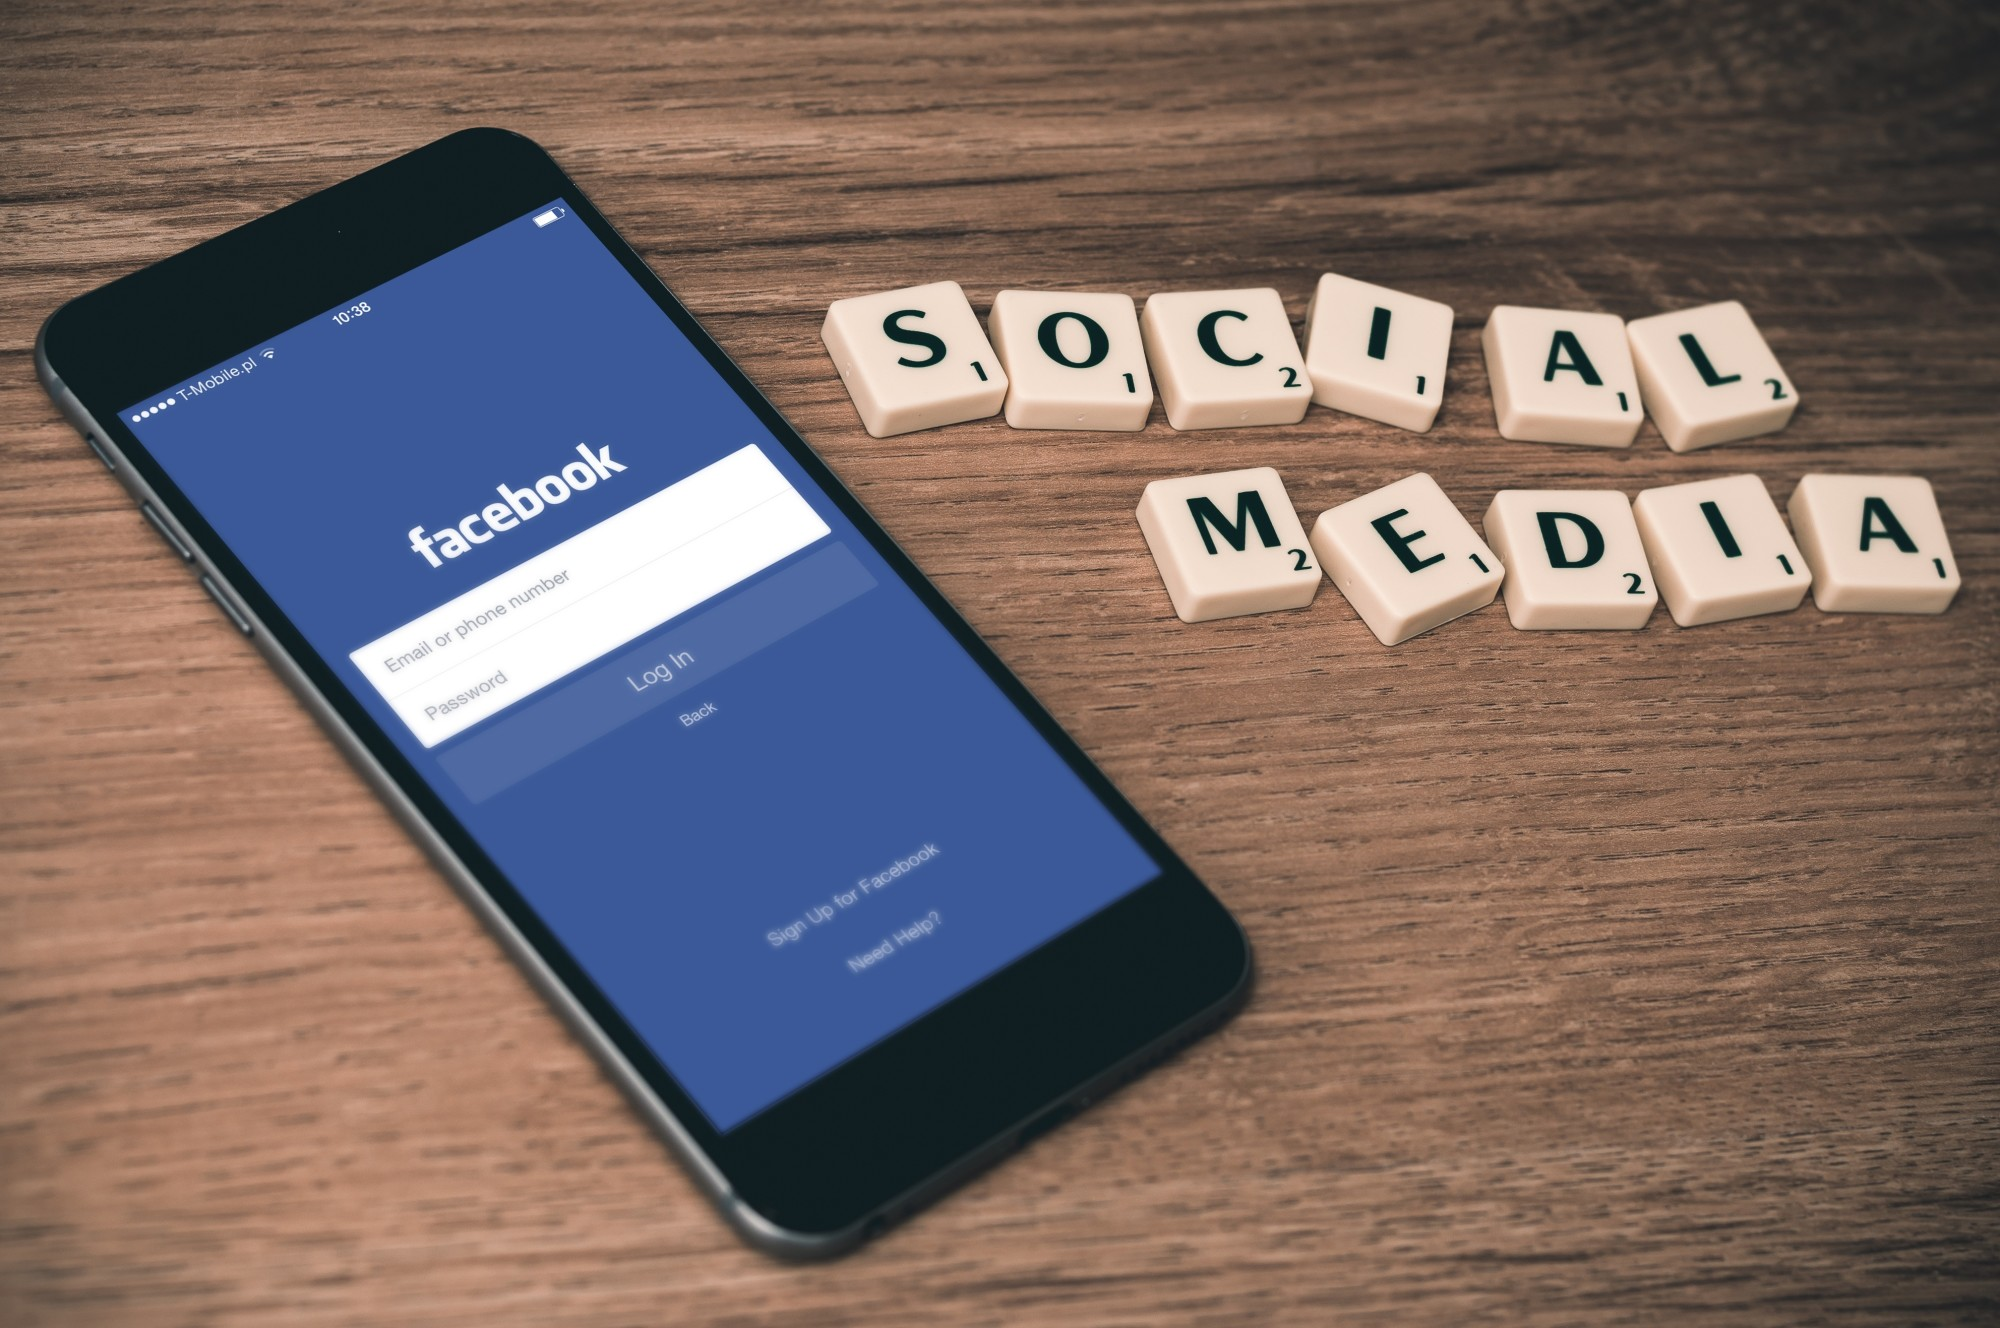 advertising on facebook, benefits of Facebook, benefits of Facebook advertising, benefits of facebook promotion, buy Facebook likes, Buy FB Likes, facebook ads manager, Facebook likes in India, facebook page, Indidigital, top benefits of FB advertising, why facebook advertising is effective